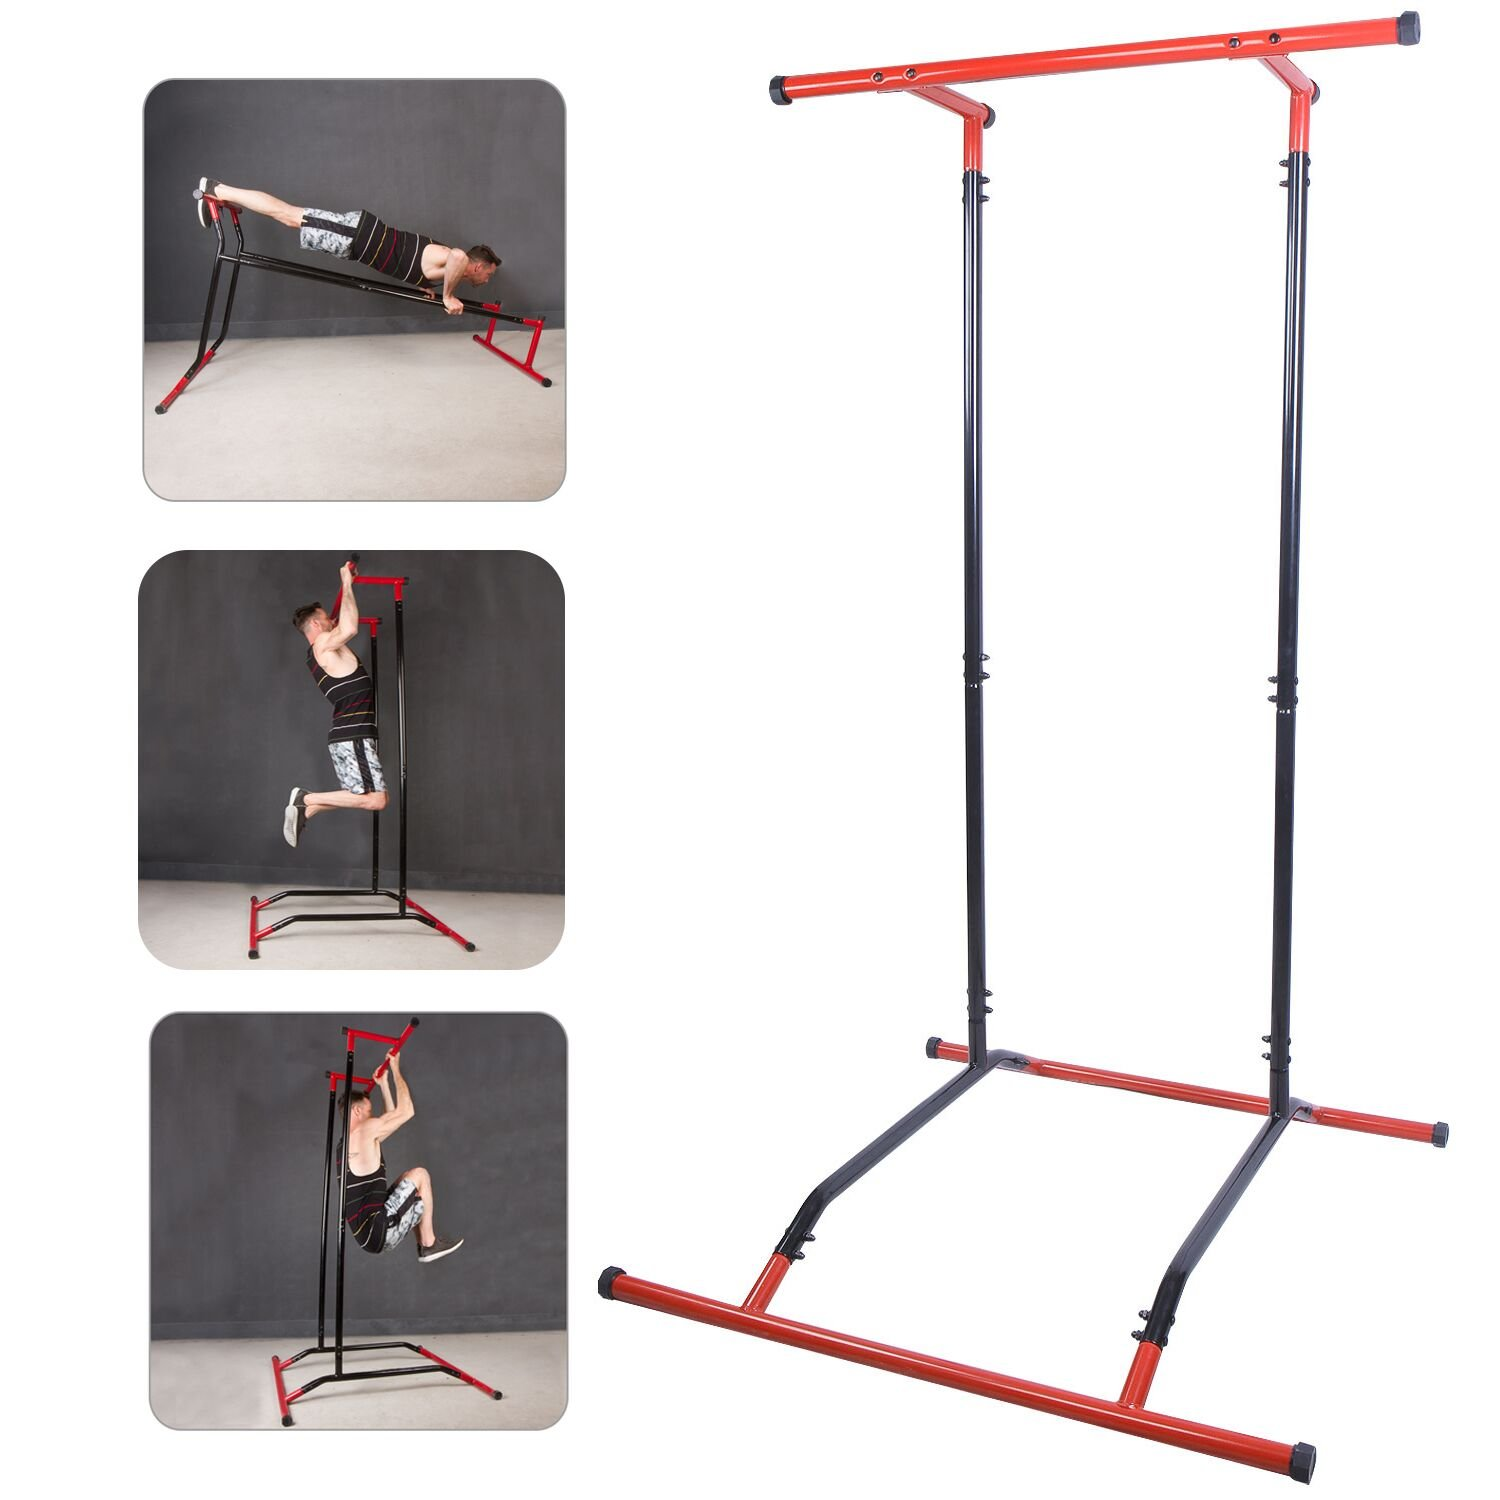 CCLIFE Multifunktion Pull Up Bar mit Klimmzugstange Pull up Station Trainingsbar Fitnessstation Belastbarkeit 110 kg